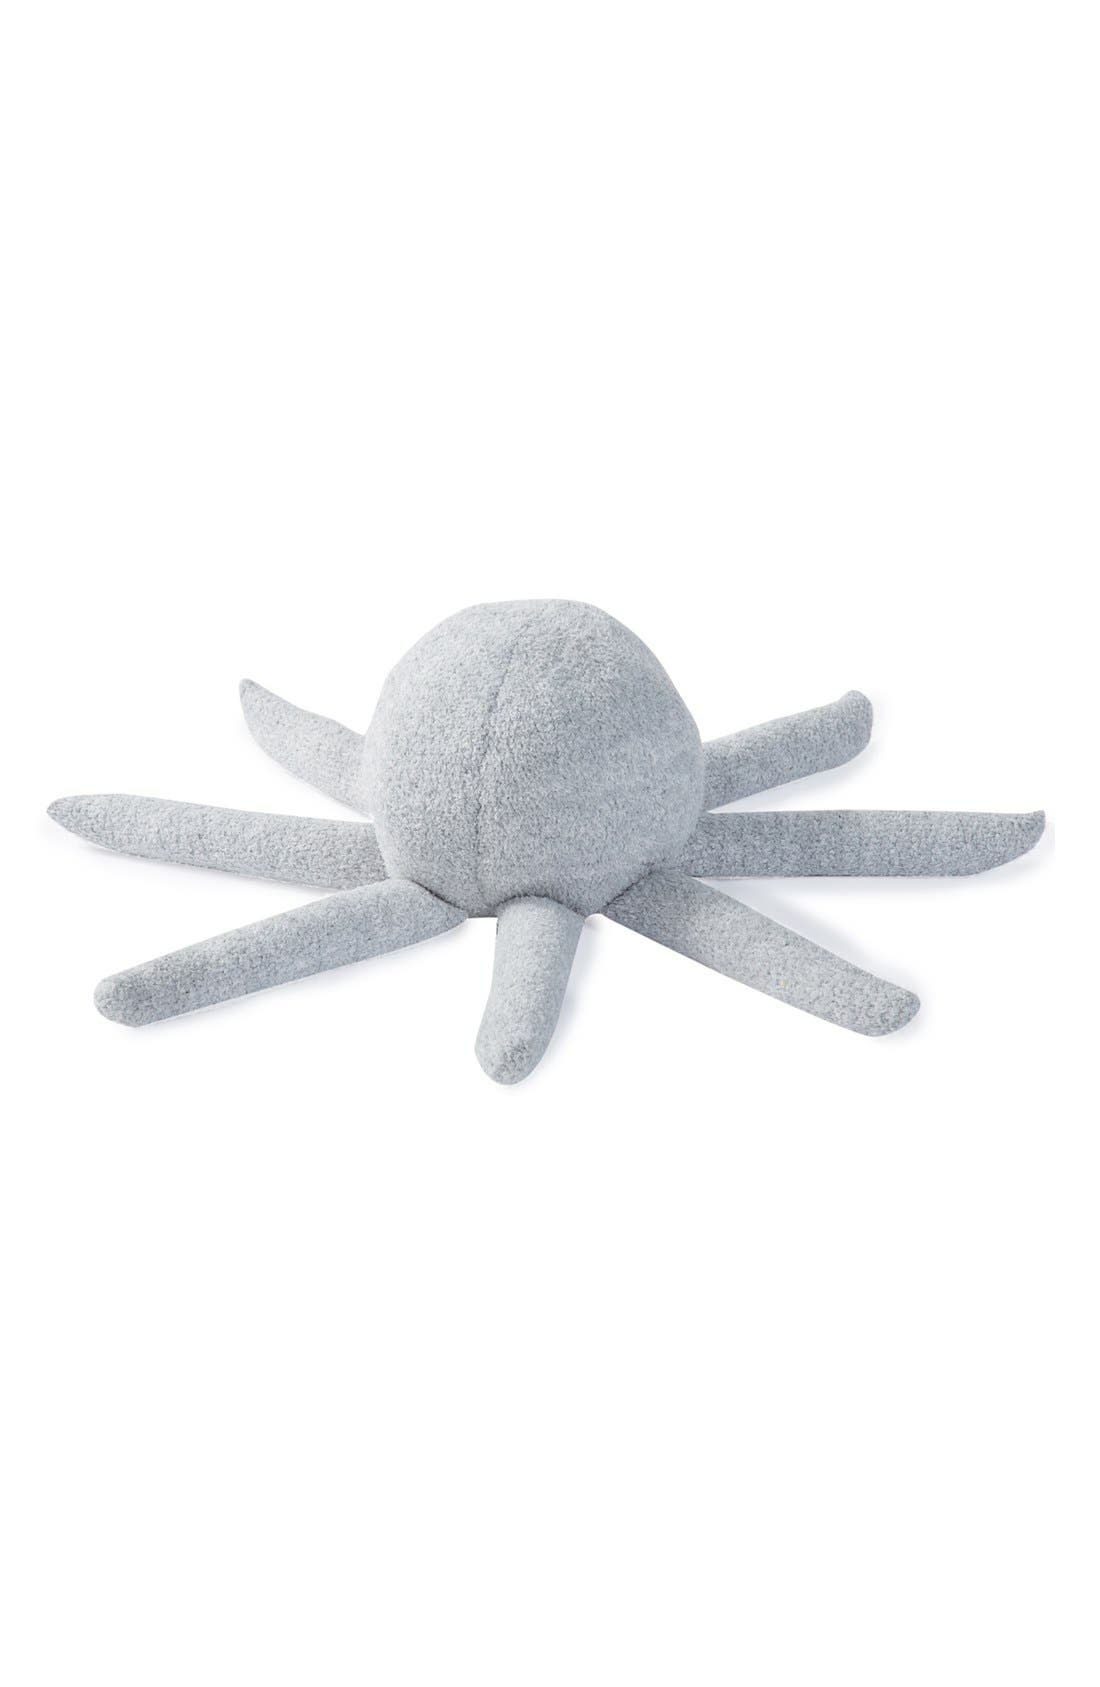 'CozyChic<sup>®</sup> Octopus Buddie' Plush Toy,                             Alternate thumbnail 2, color,                             Ocean/White